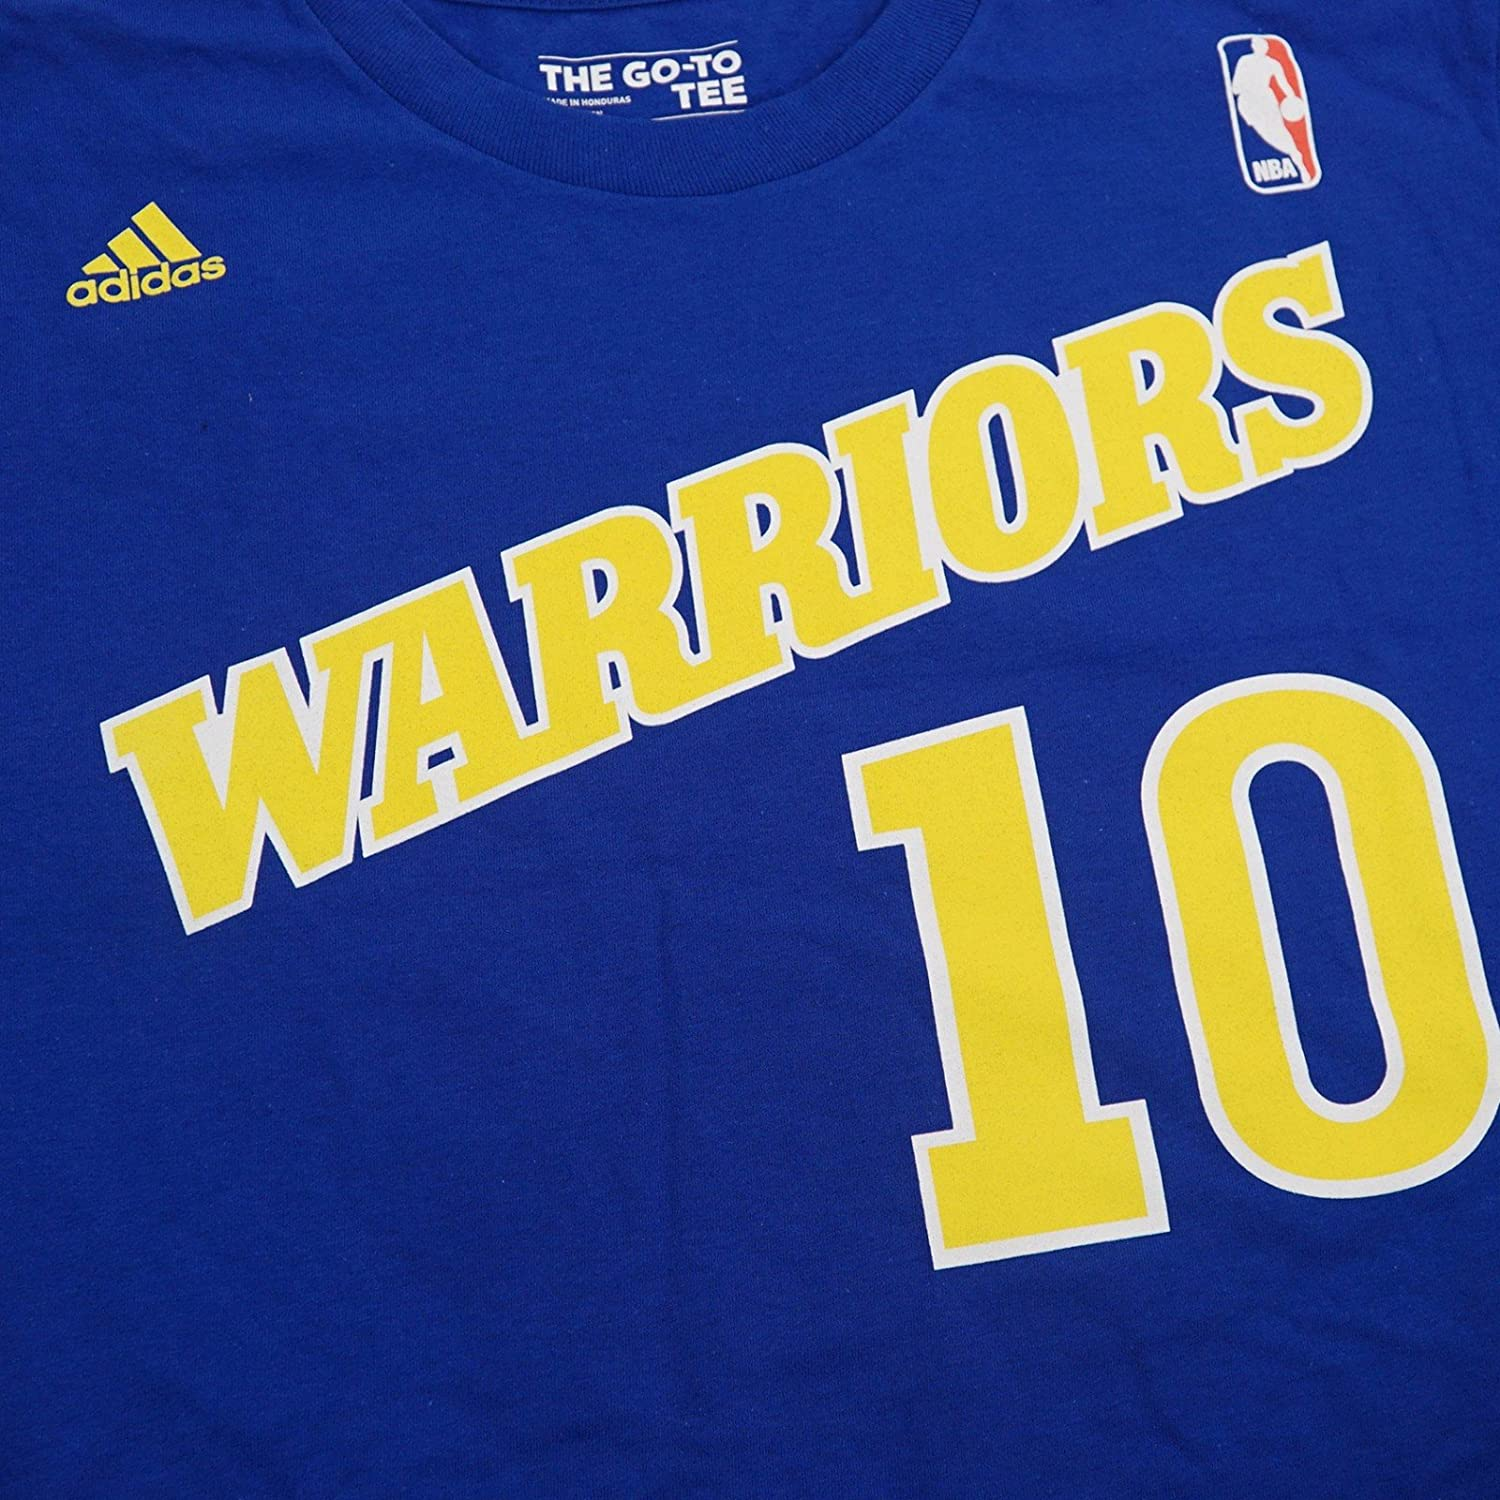 Adidas Blue Golden Throwback T Shirt Bol Manute Royal State Warriors lOkuiTwXZP